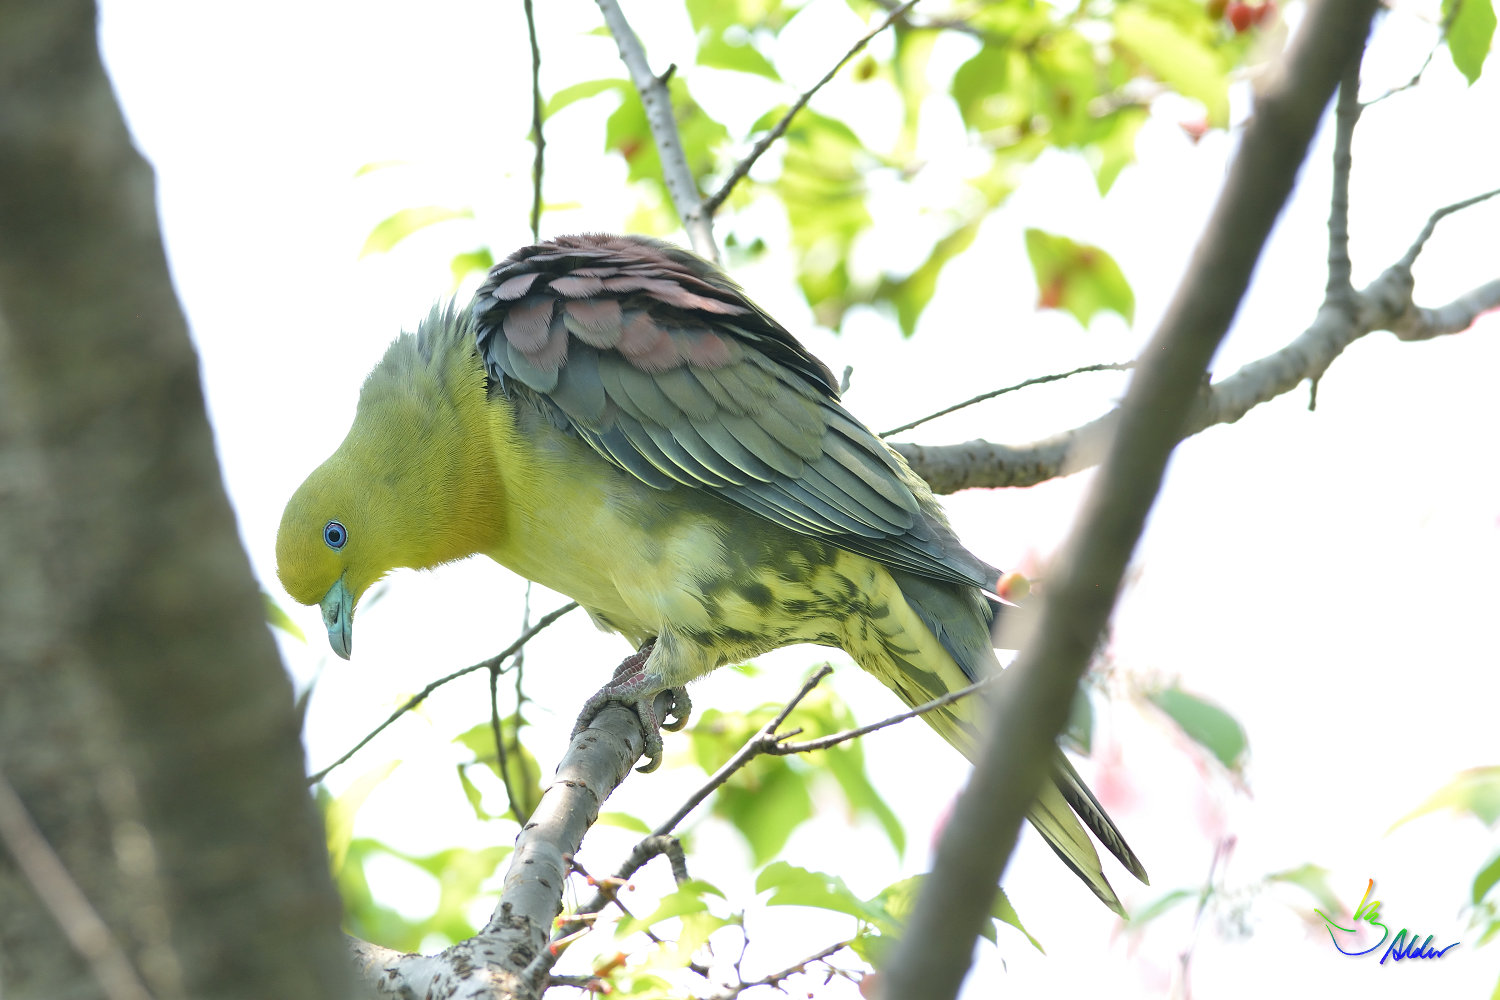 White-bellied_Green_Pigeon_5766